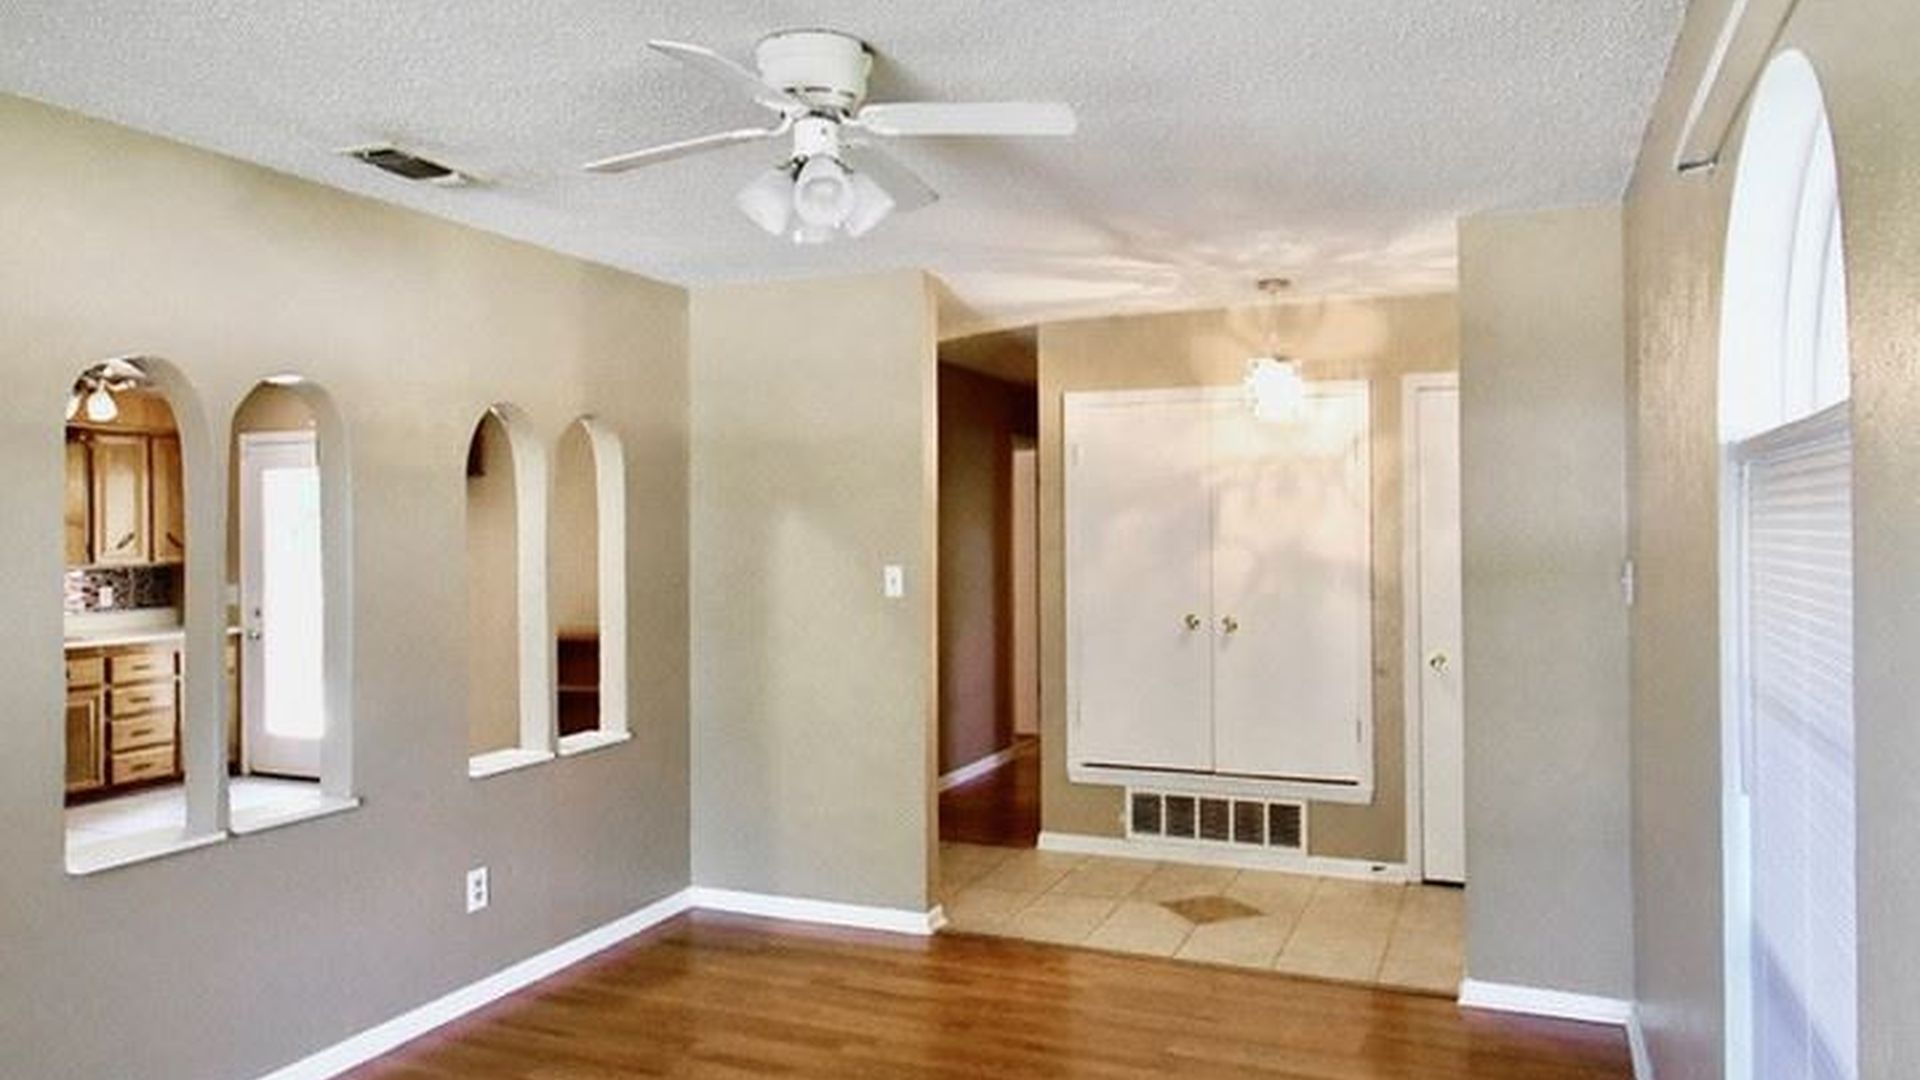 Houses For Rent in Killeen TX - 528 Homes   Zillow